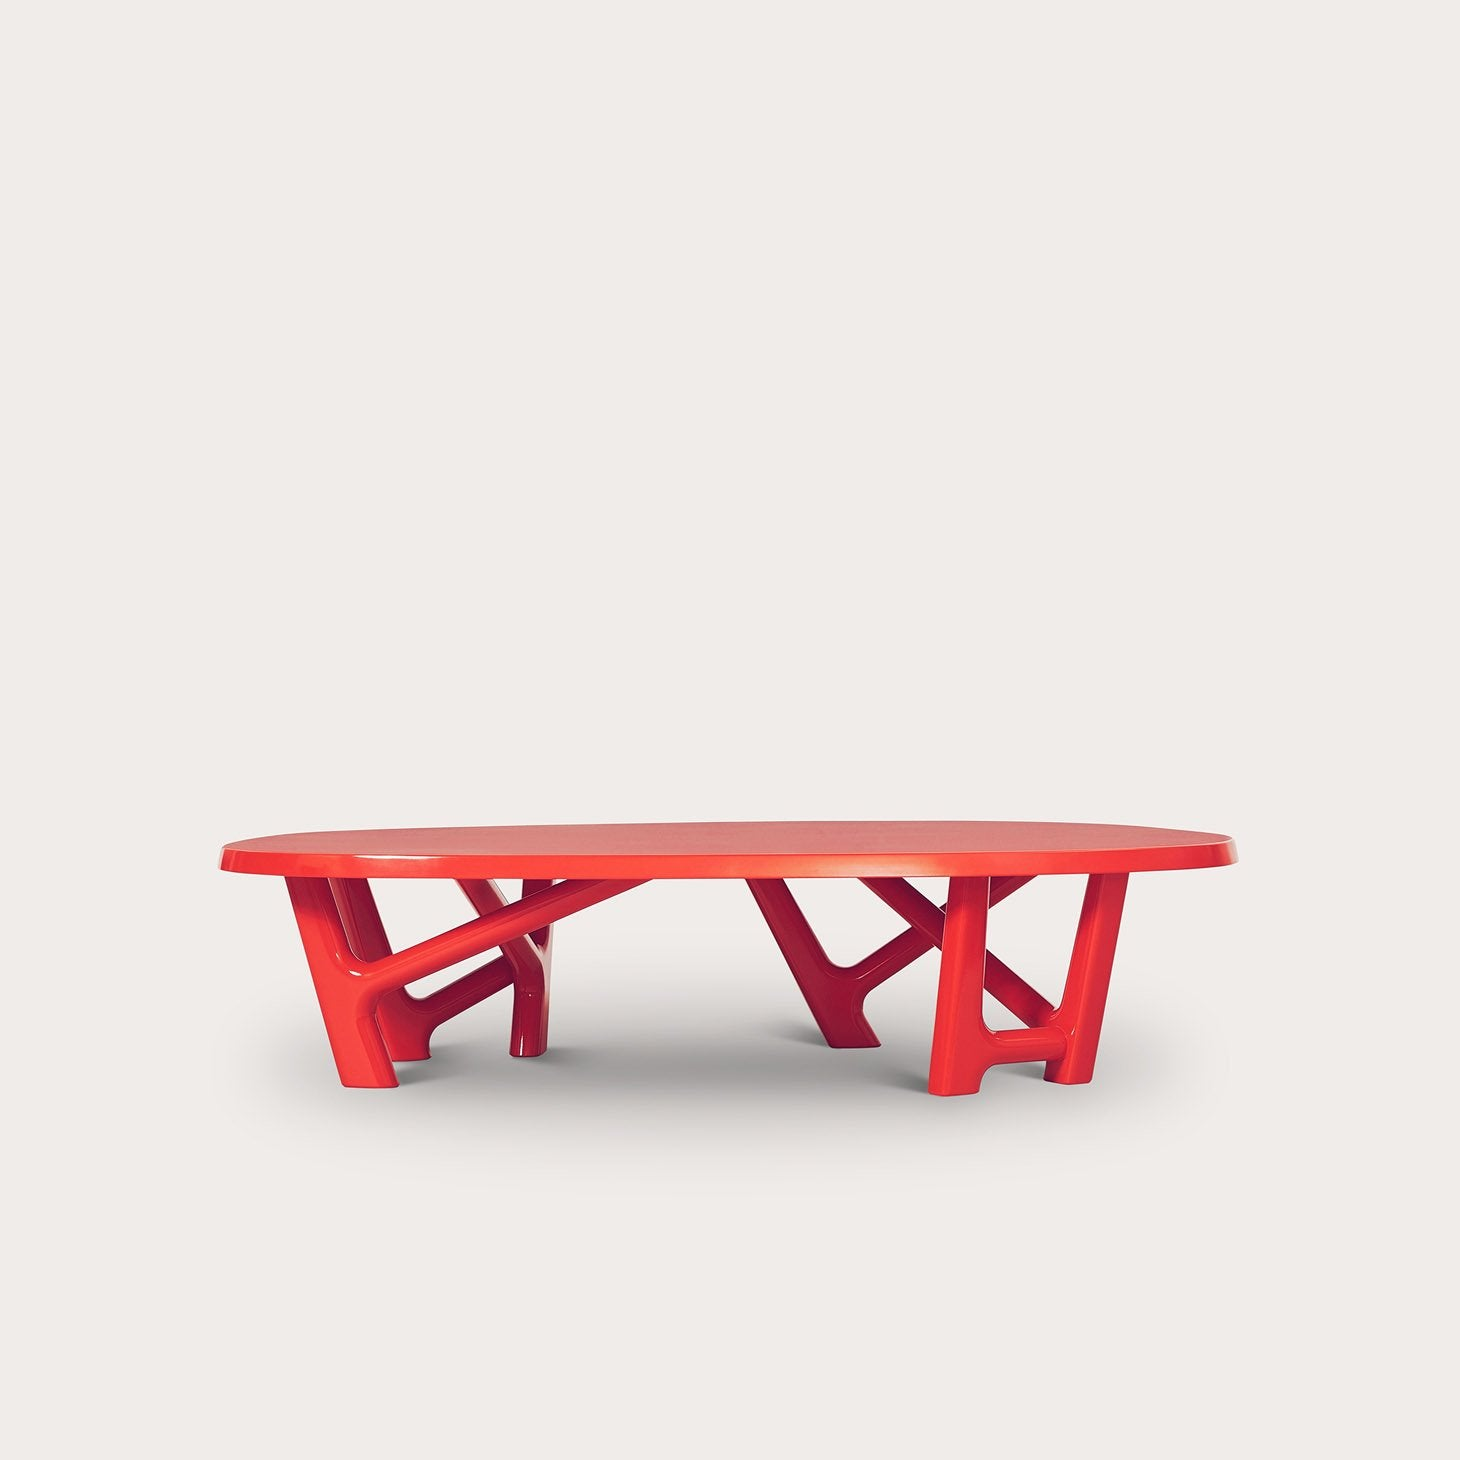 OBA Tables Jean-Pierre Tortil Designer Furniture Sku: 008-230-10299